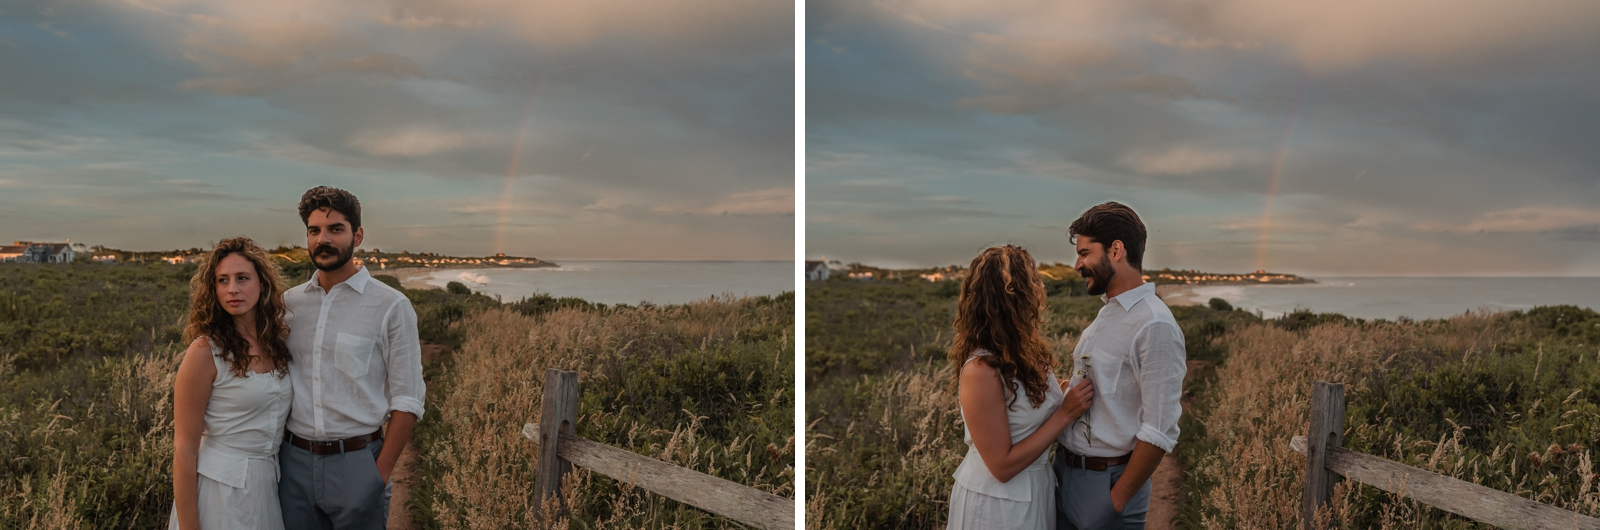 JJP_Nikki & Bud_Shadmoor_Montauk_NY_Cliff Engagement Session116.jpg_blog.jpg